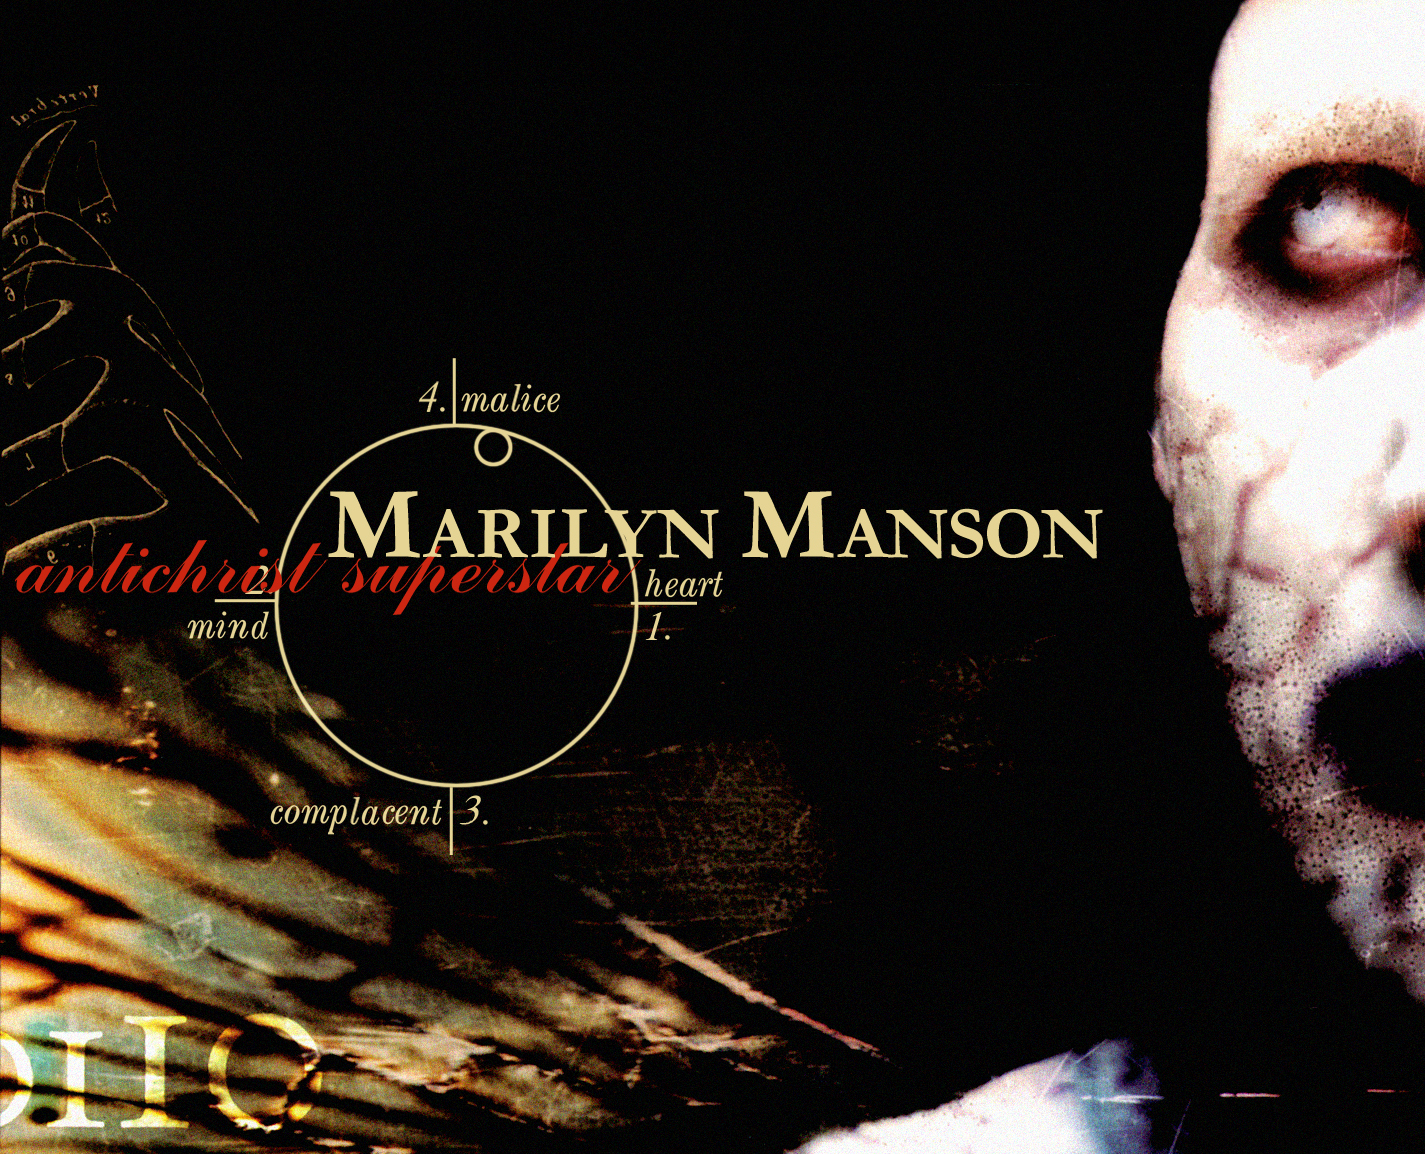 Marilyn Manson Facts